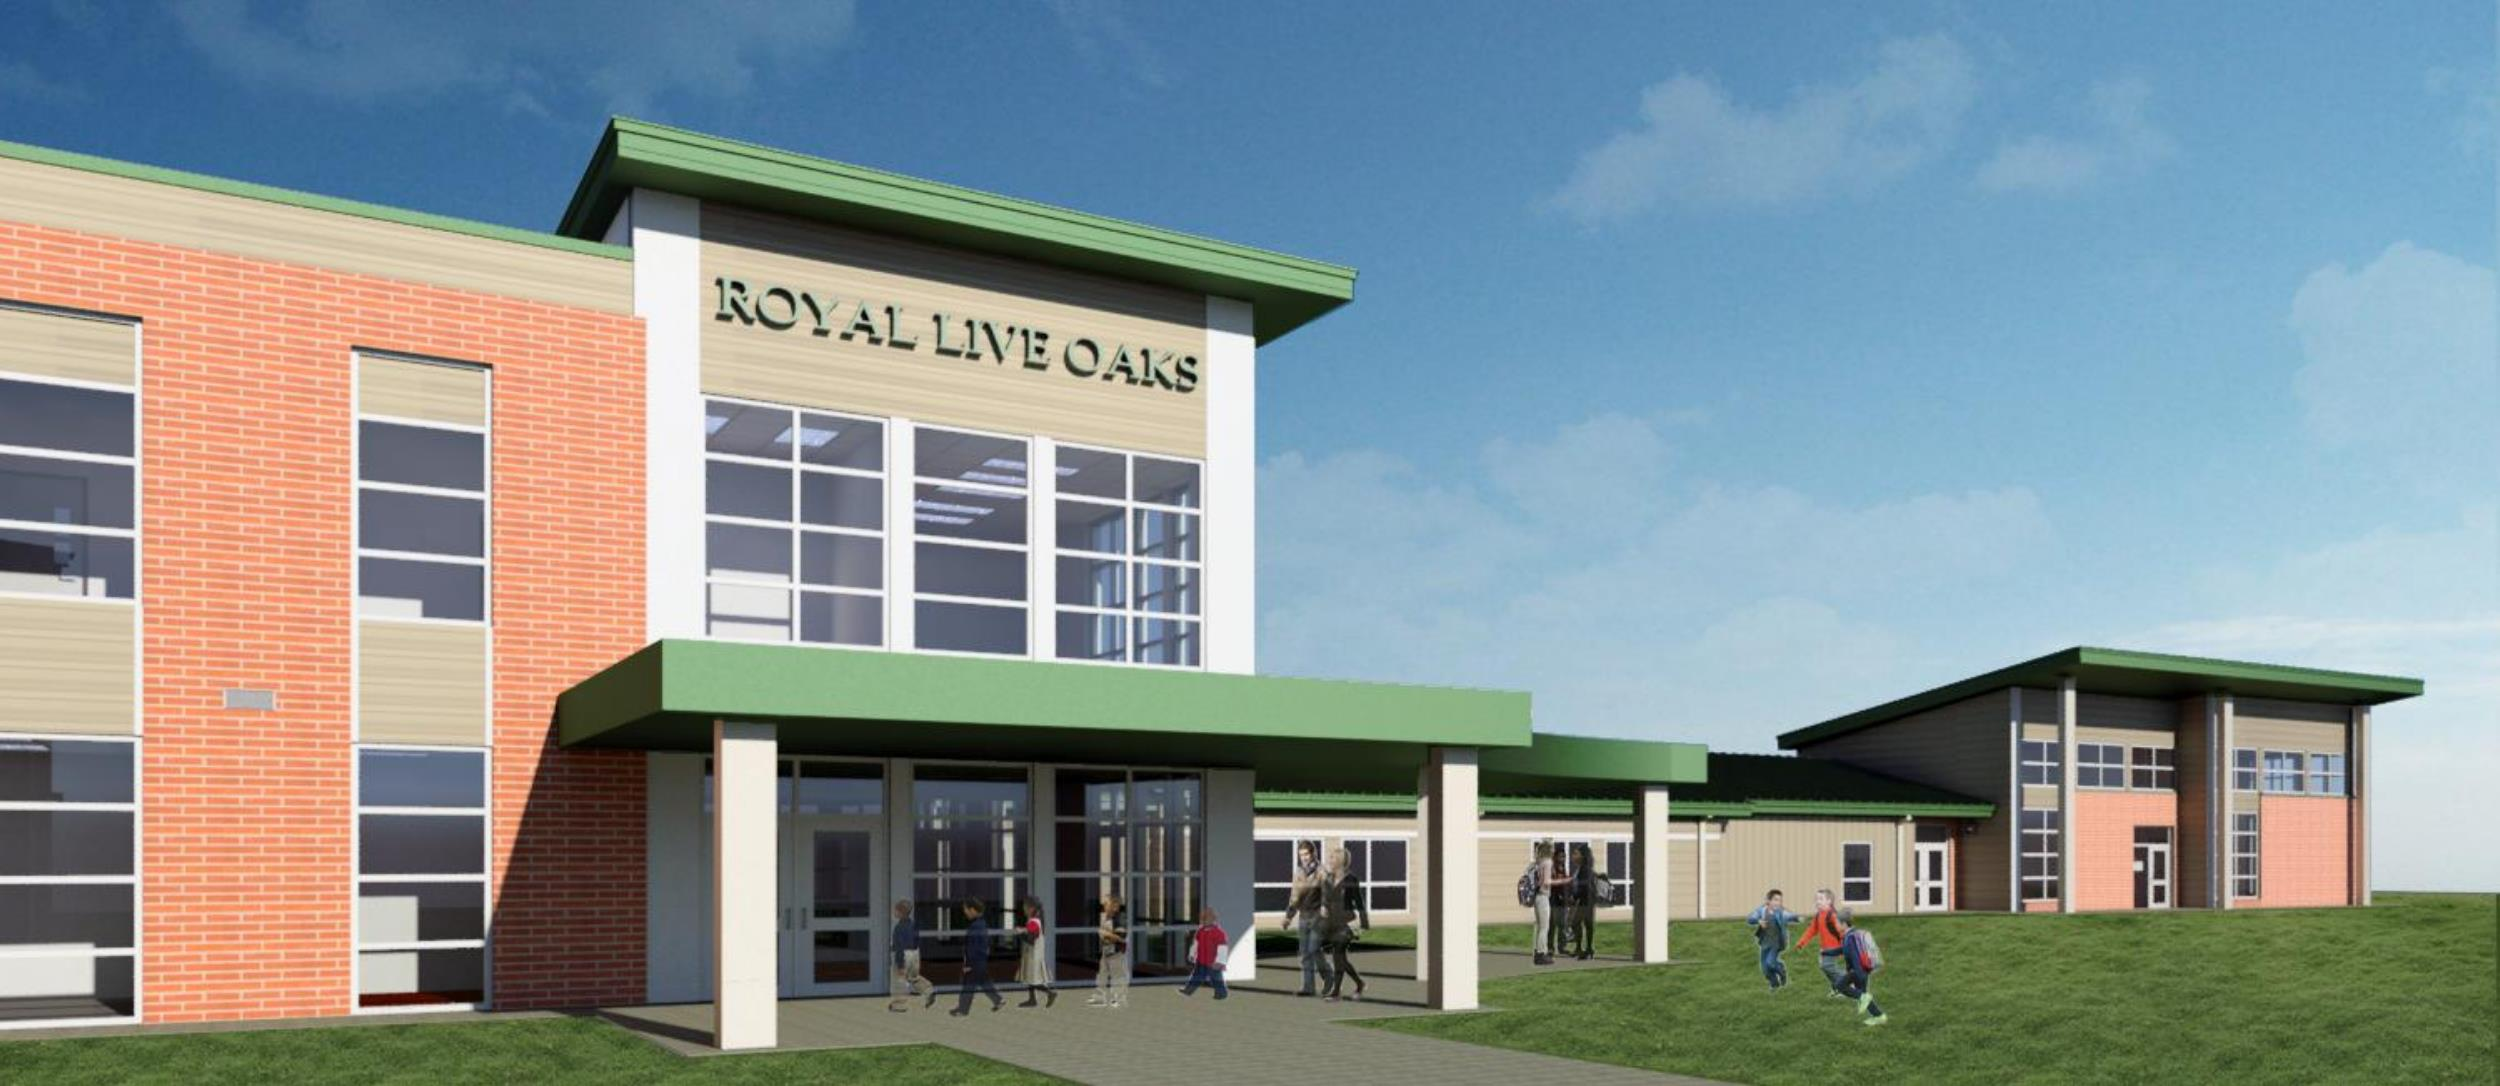 royal-live-oaks-architects-rendering